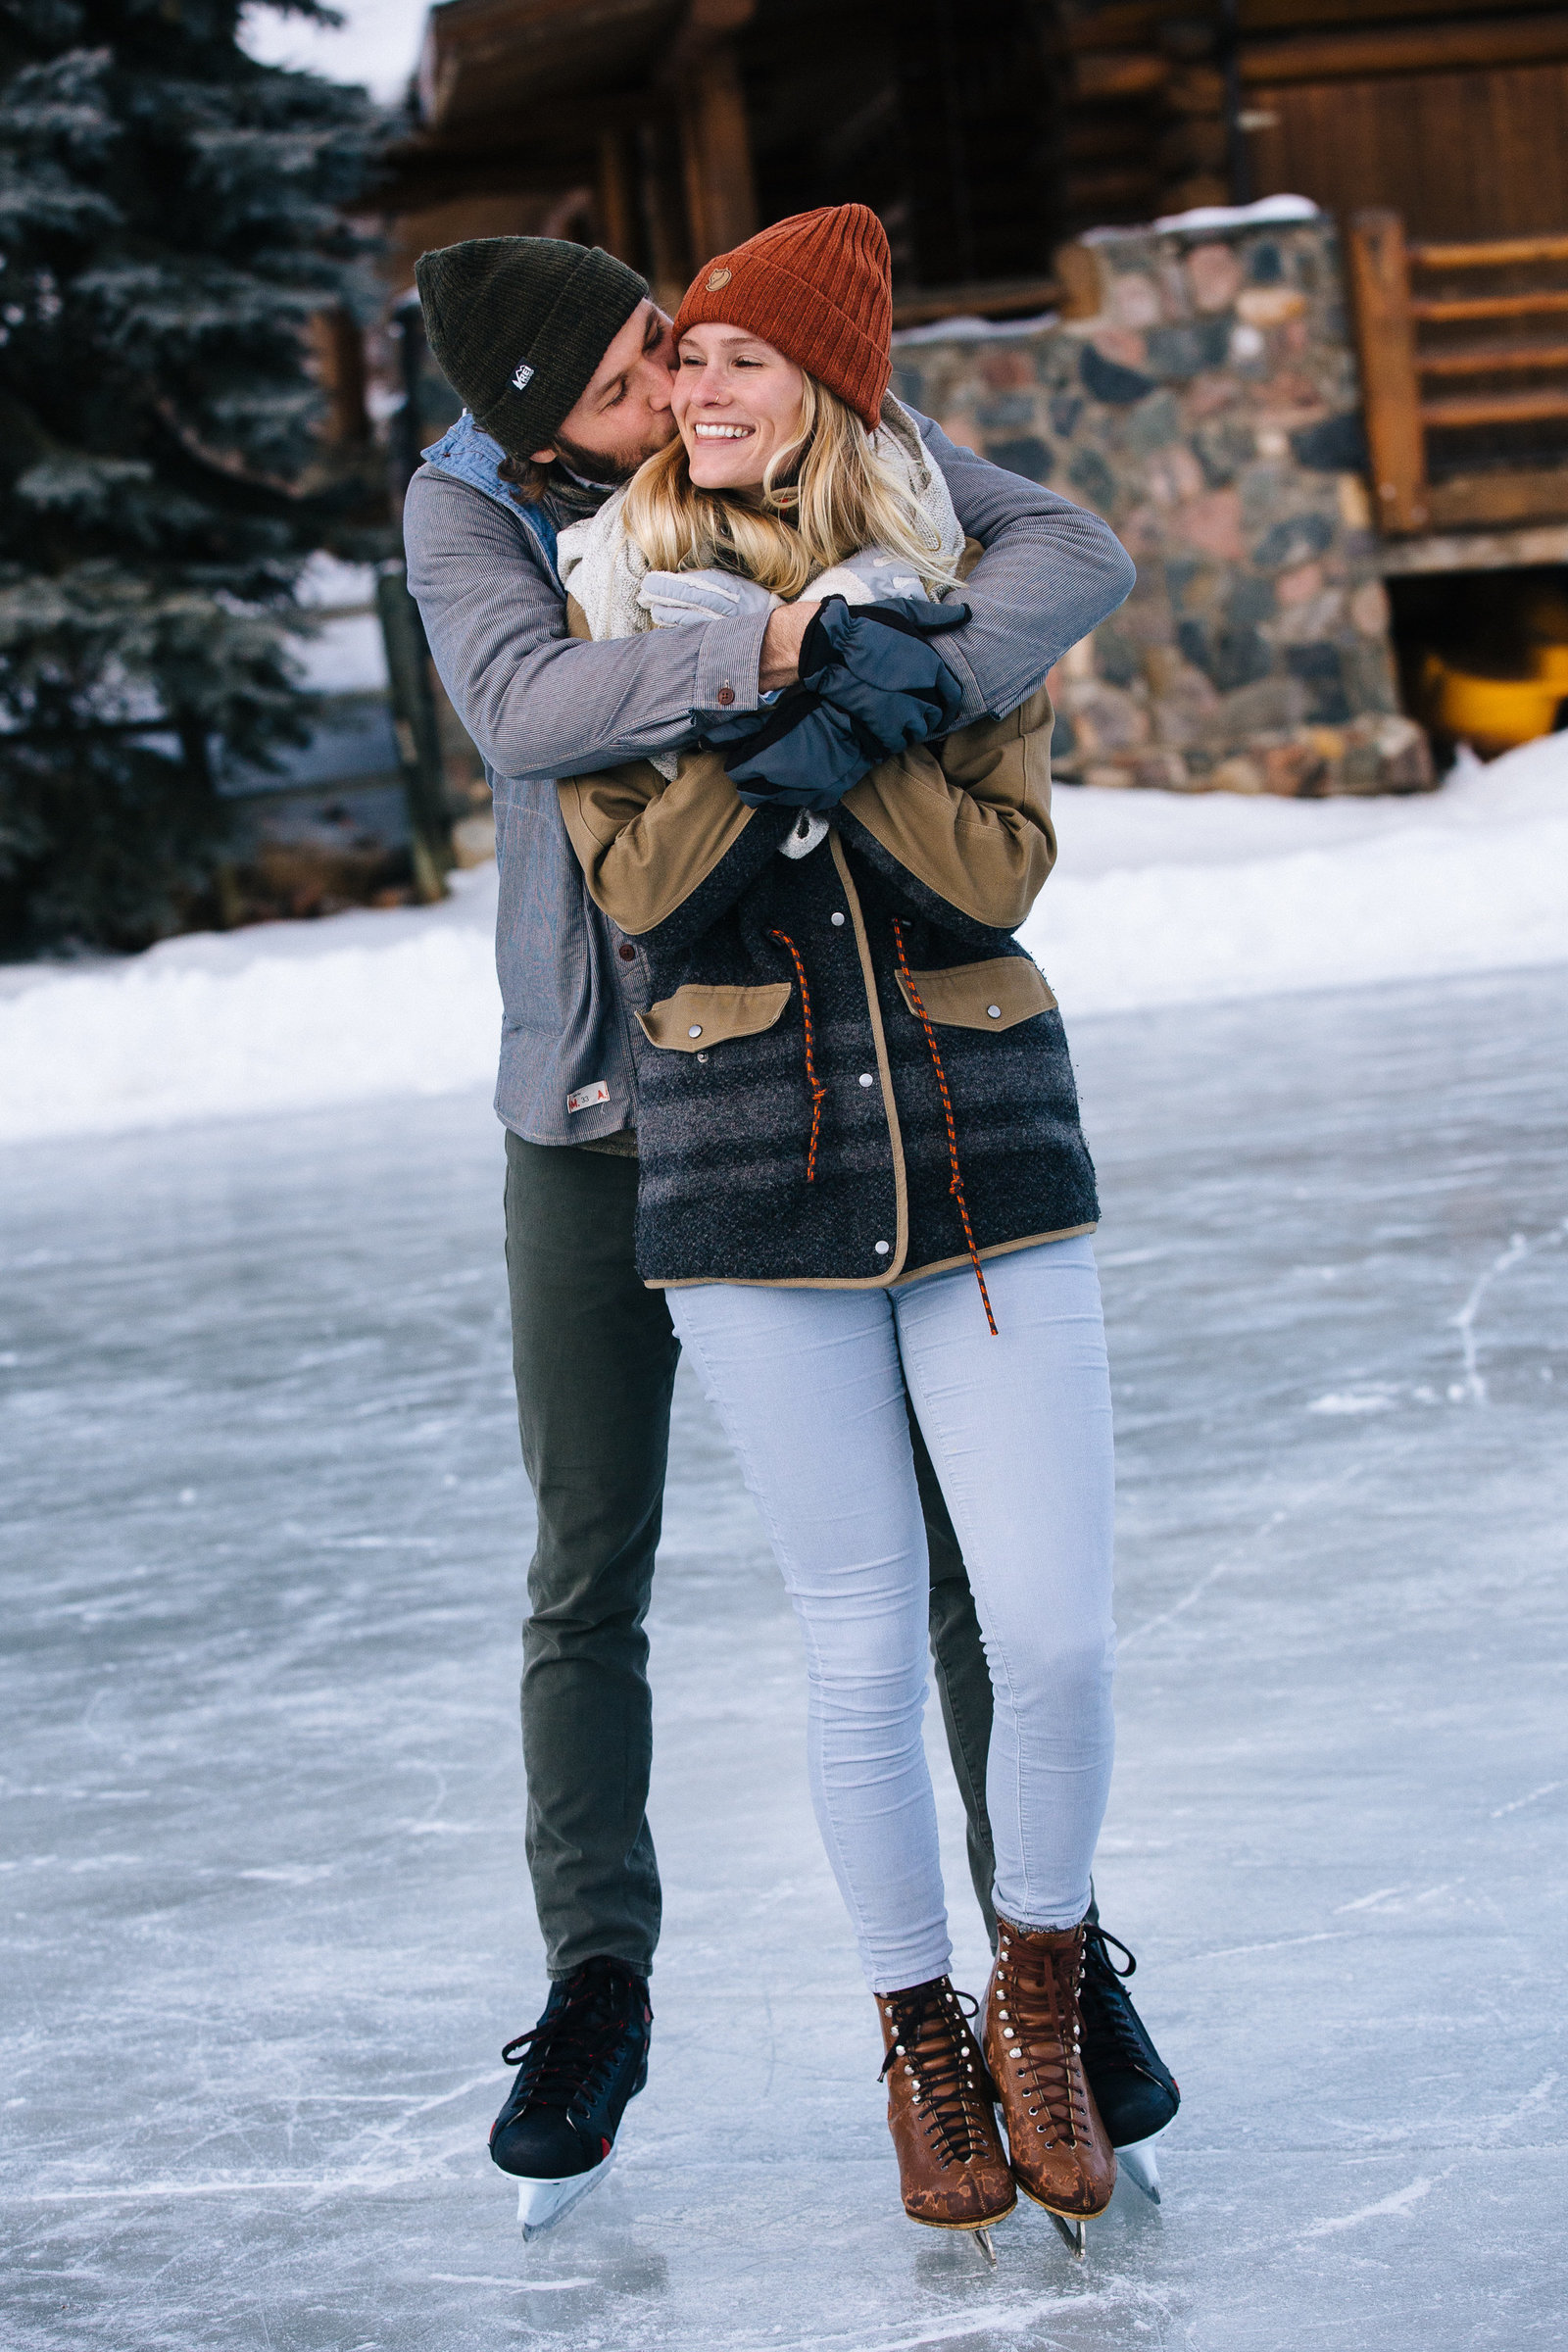 Evergreen ice skating photography - Holloman-5